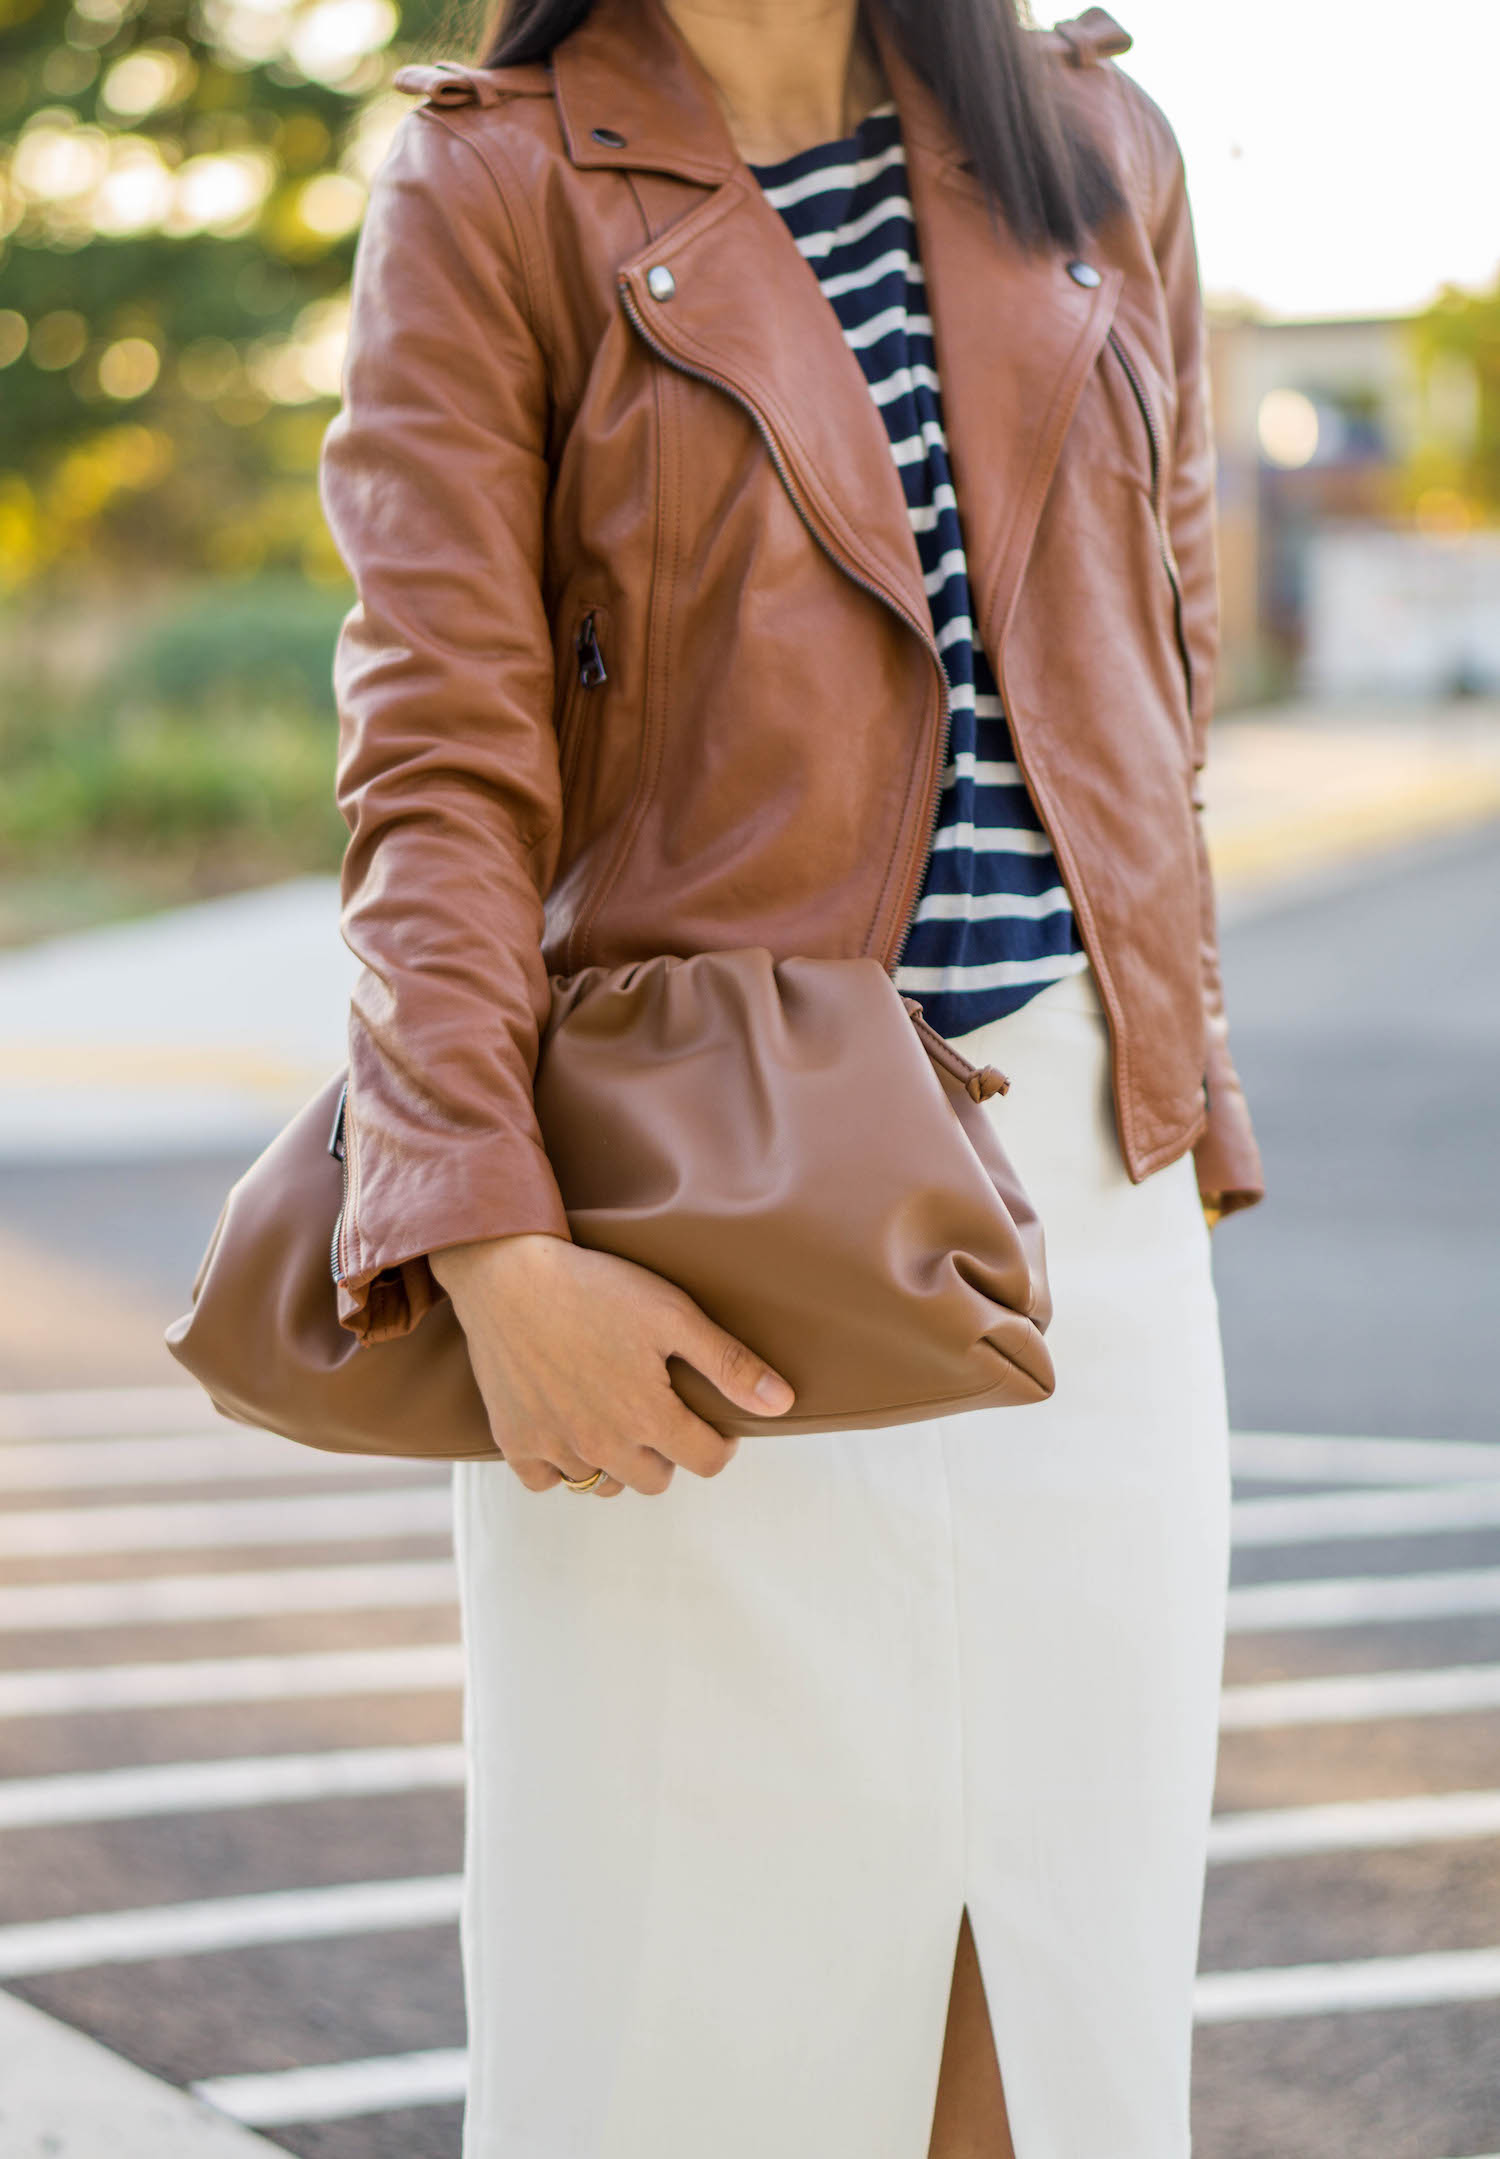 Banana Republic caramel leather moto jacket, J.Crew navy striped top, Looks Like Summer Claudette leather crossbody bag, Ann Taylor white front slit pencil skirt